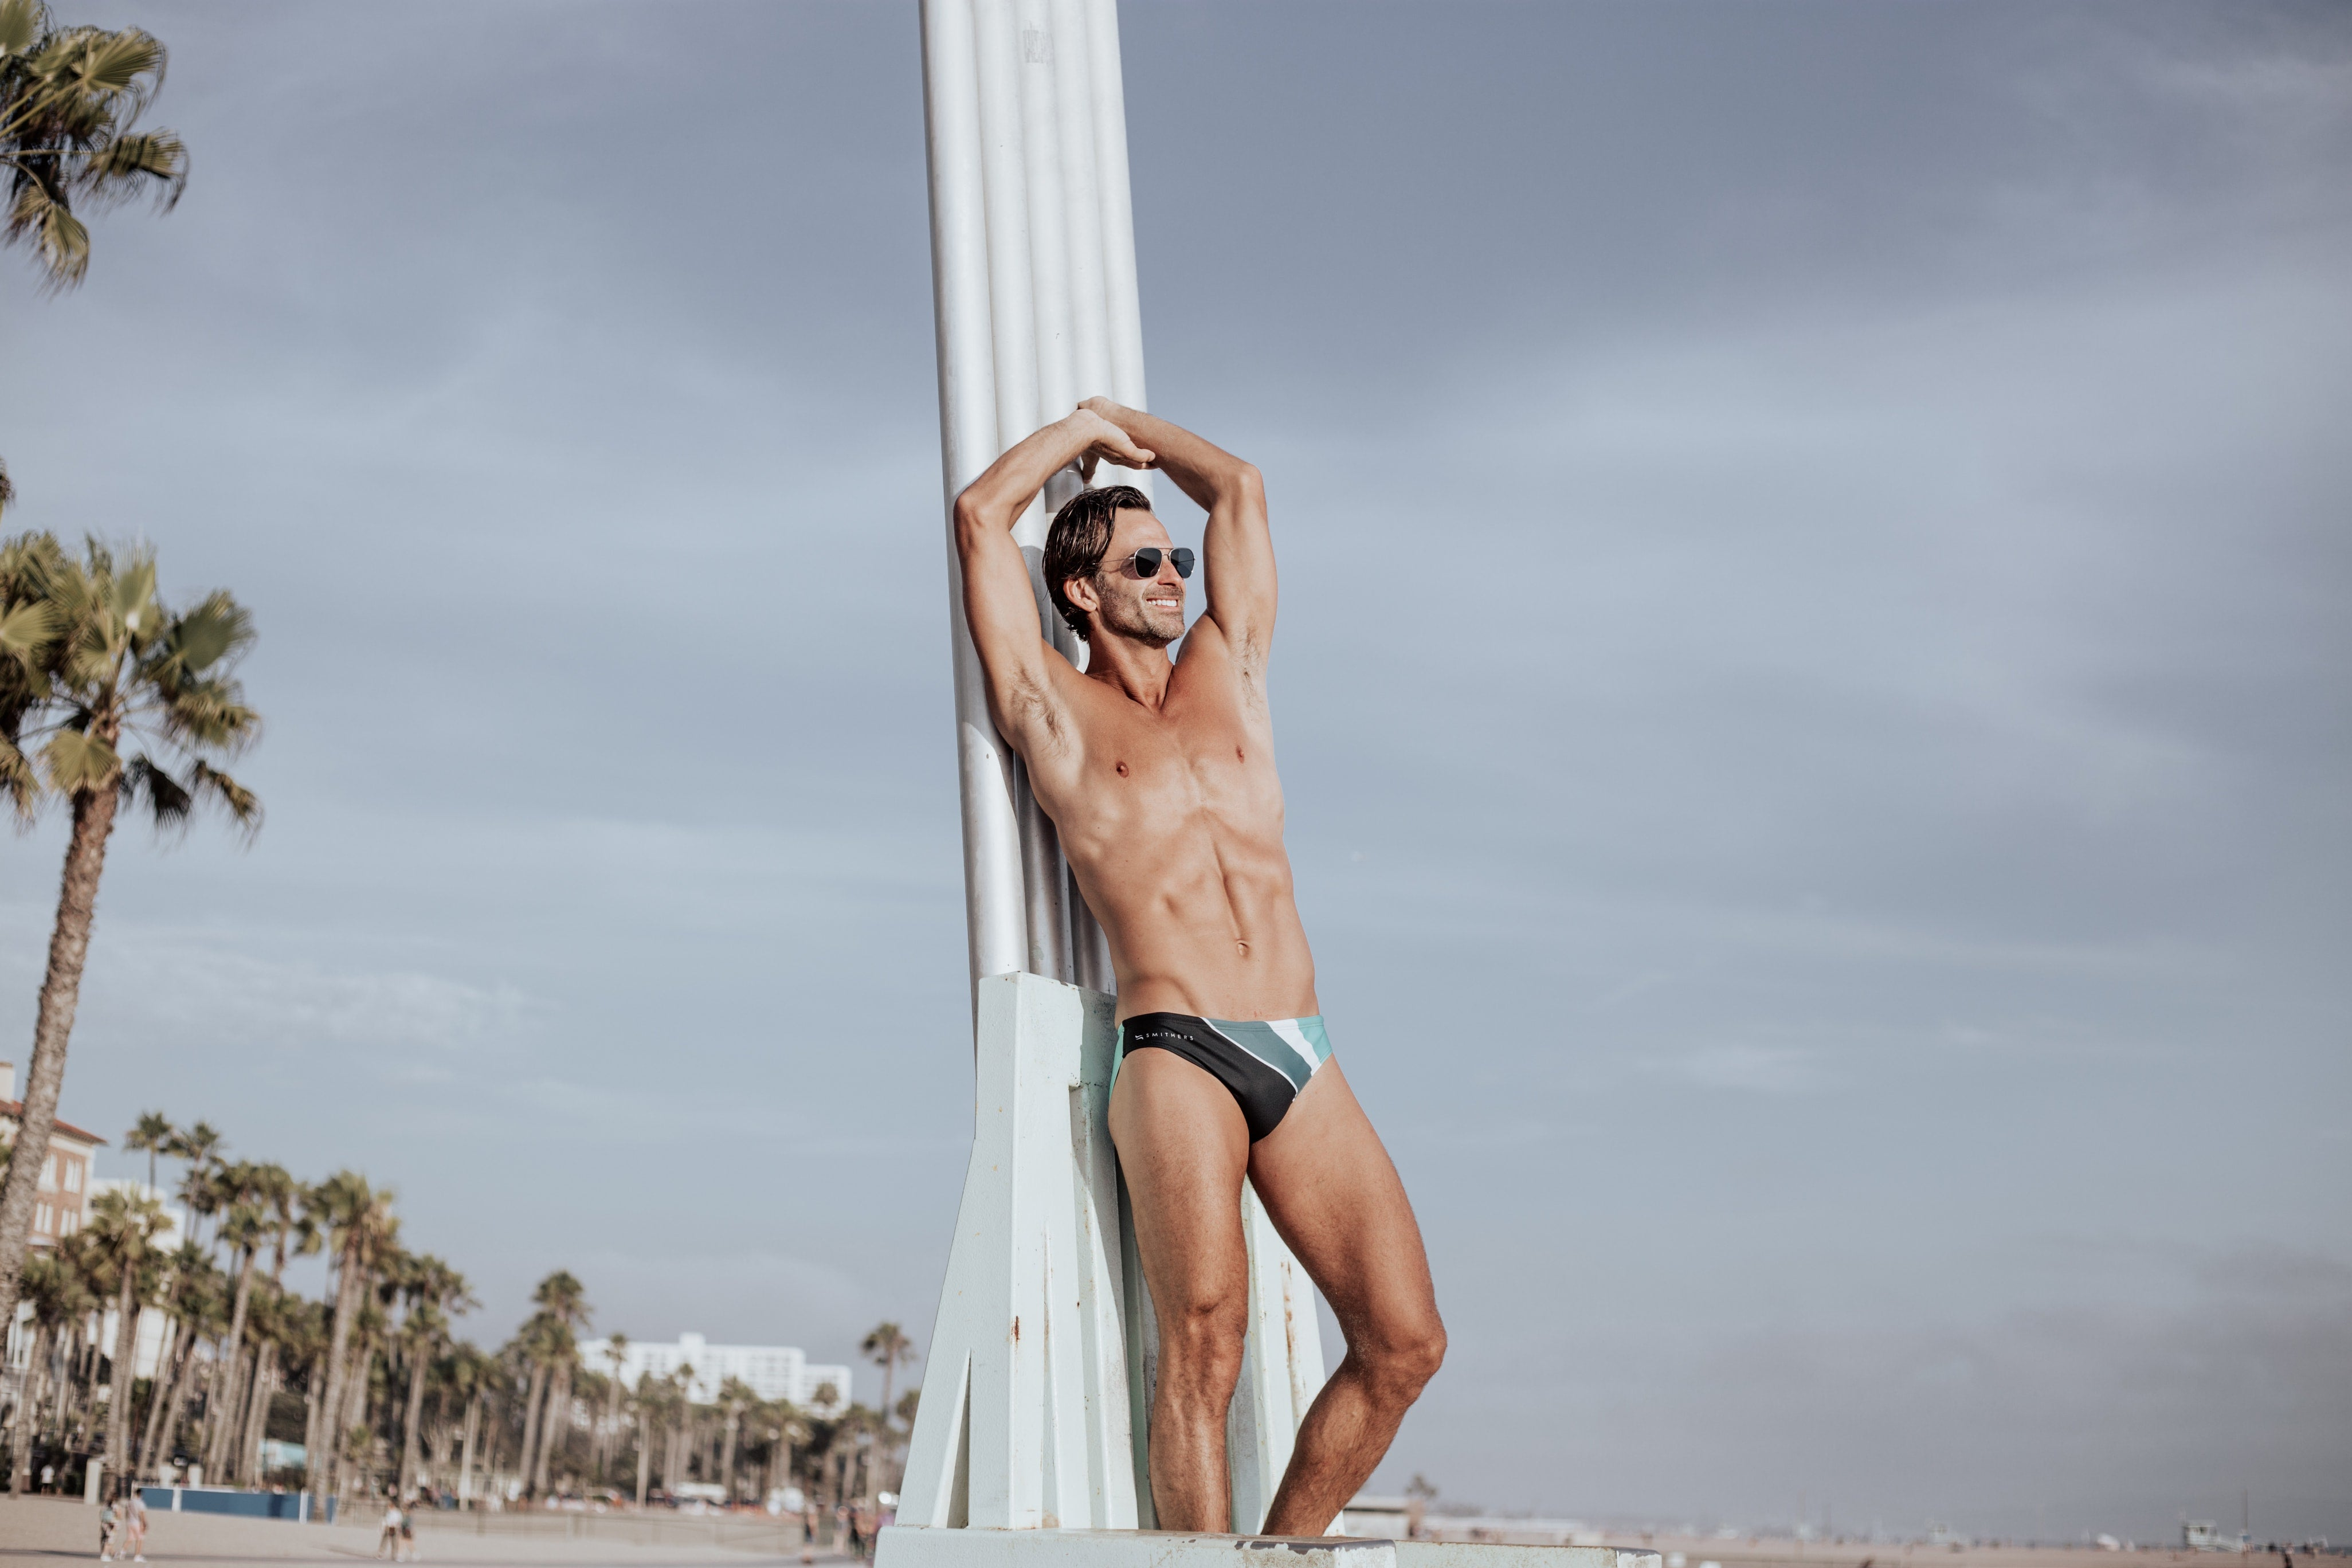 mens swimwear by Smithers swimwear